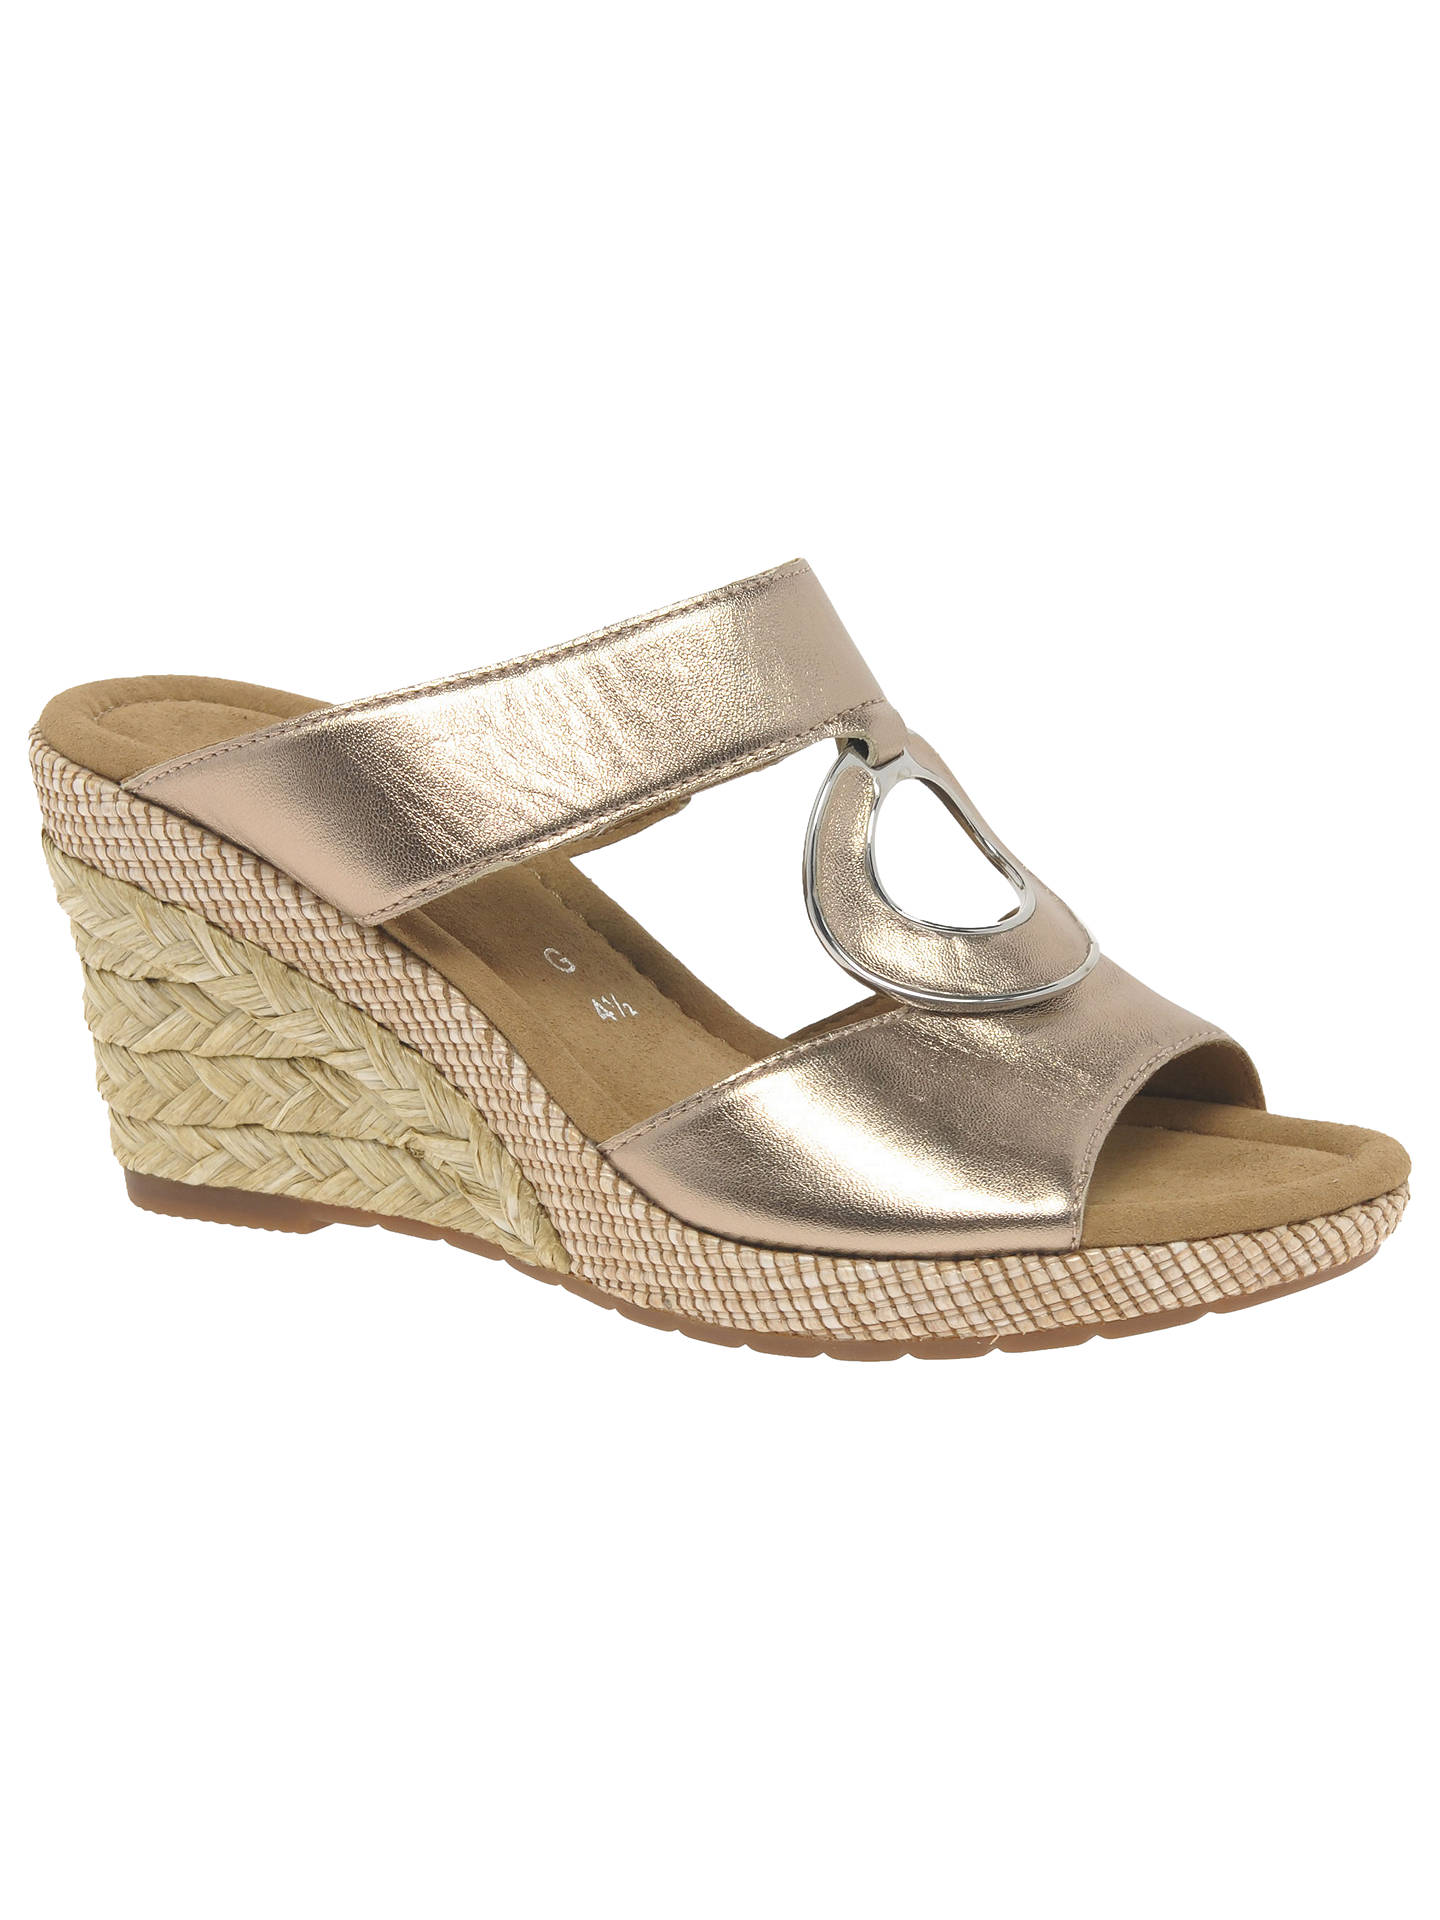 7fb66a7b3fbf Buy Gabor Sizzle Wide Fit Wedge Heeled Sandals